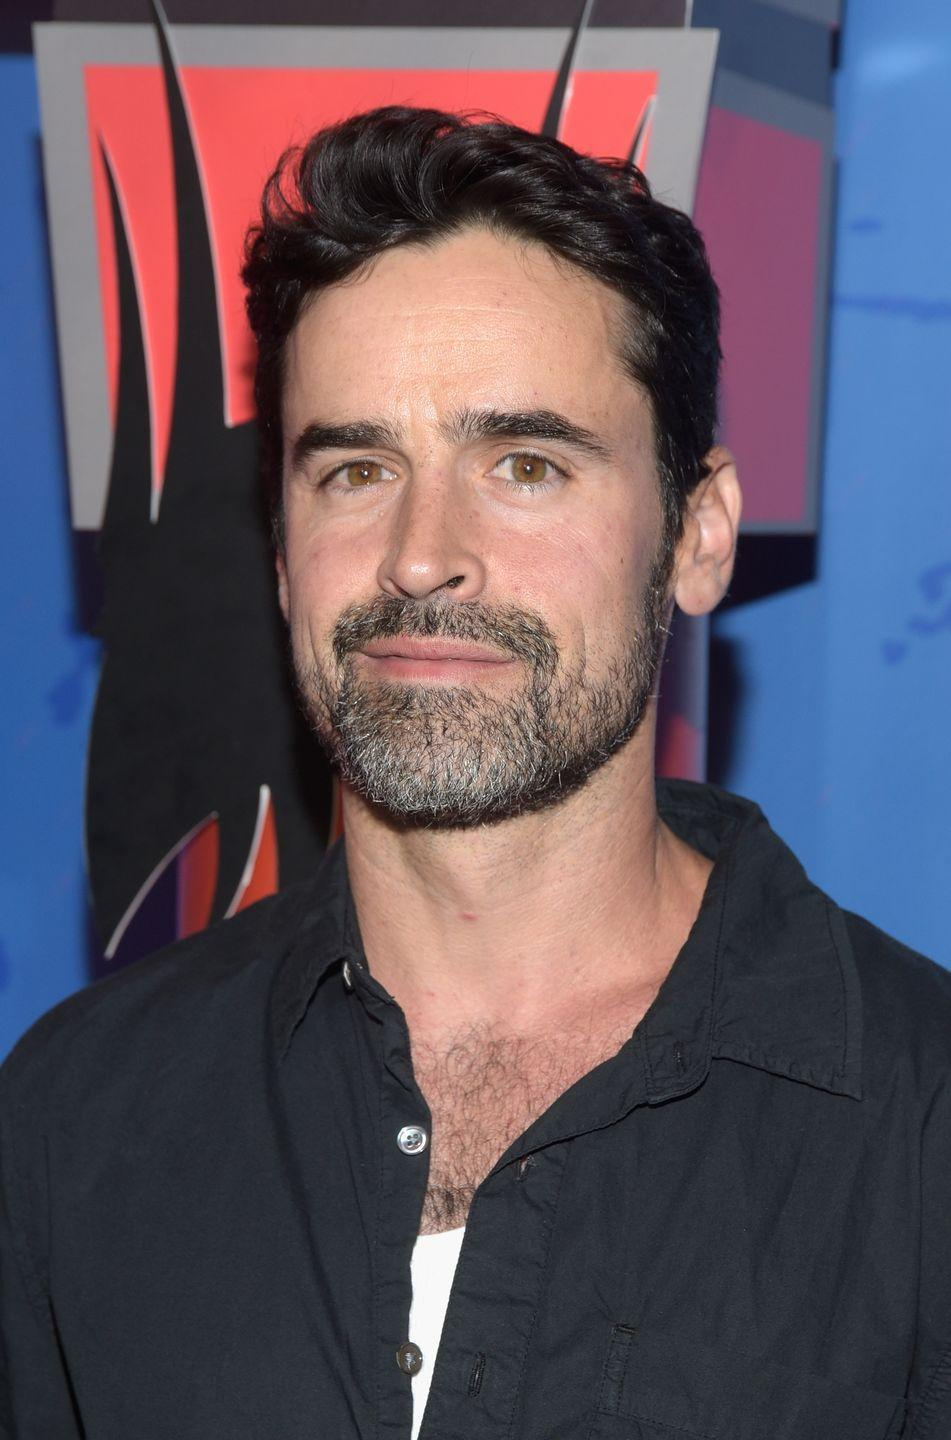 <p>Although <em>Bring It On </em>remains one of his most notable roles, Bradford went on to star in <em>Swimfan </em>in 2002. He has also appeared in TV on <em>The West Wing, Outlaw, </em>and <em>Shooter</em>. In 2018, he tied the knot with actress Andrea Watrouse. </p>